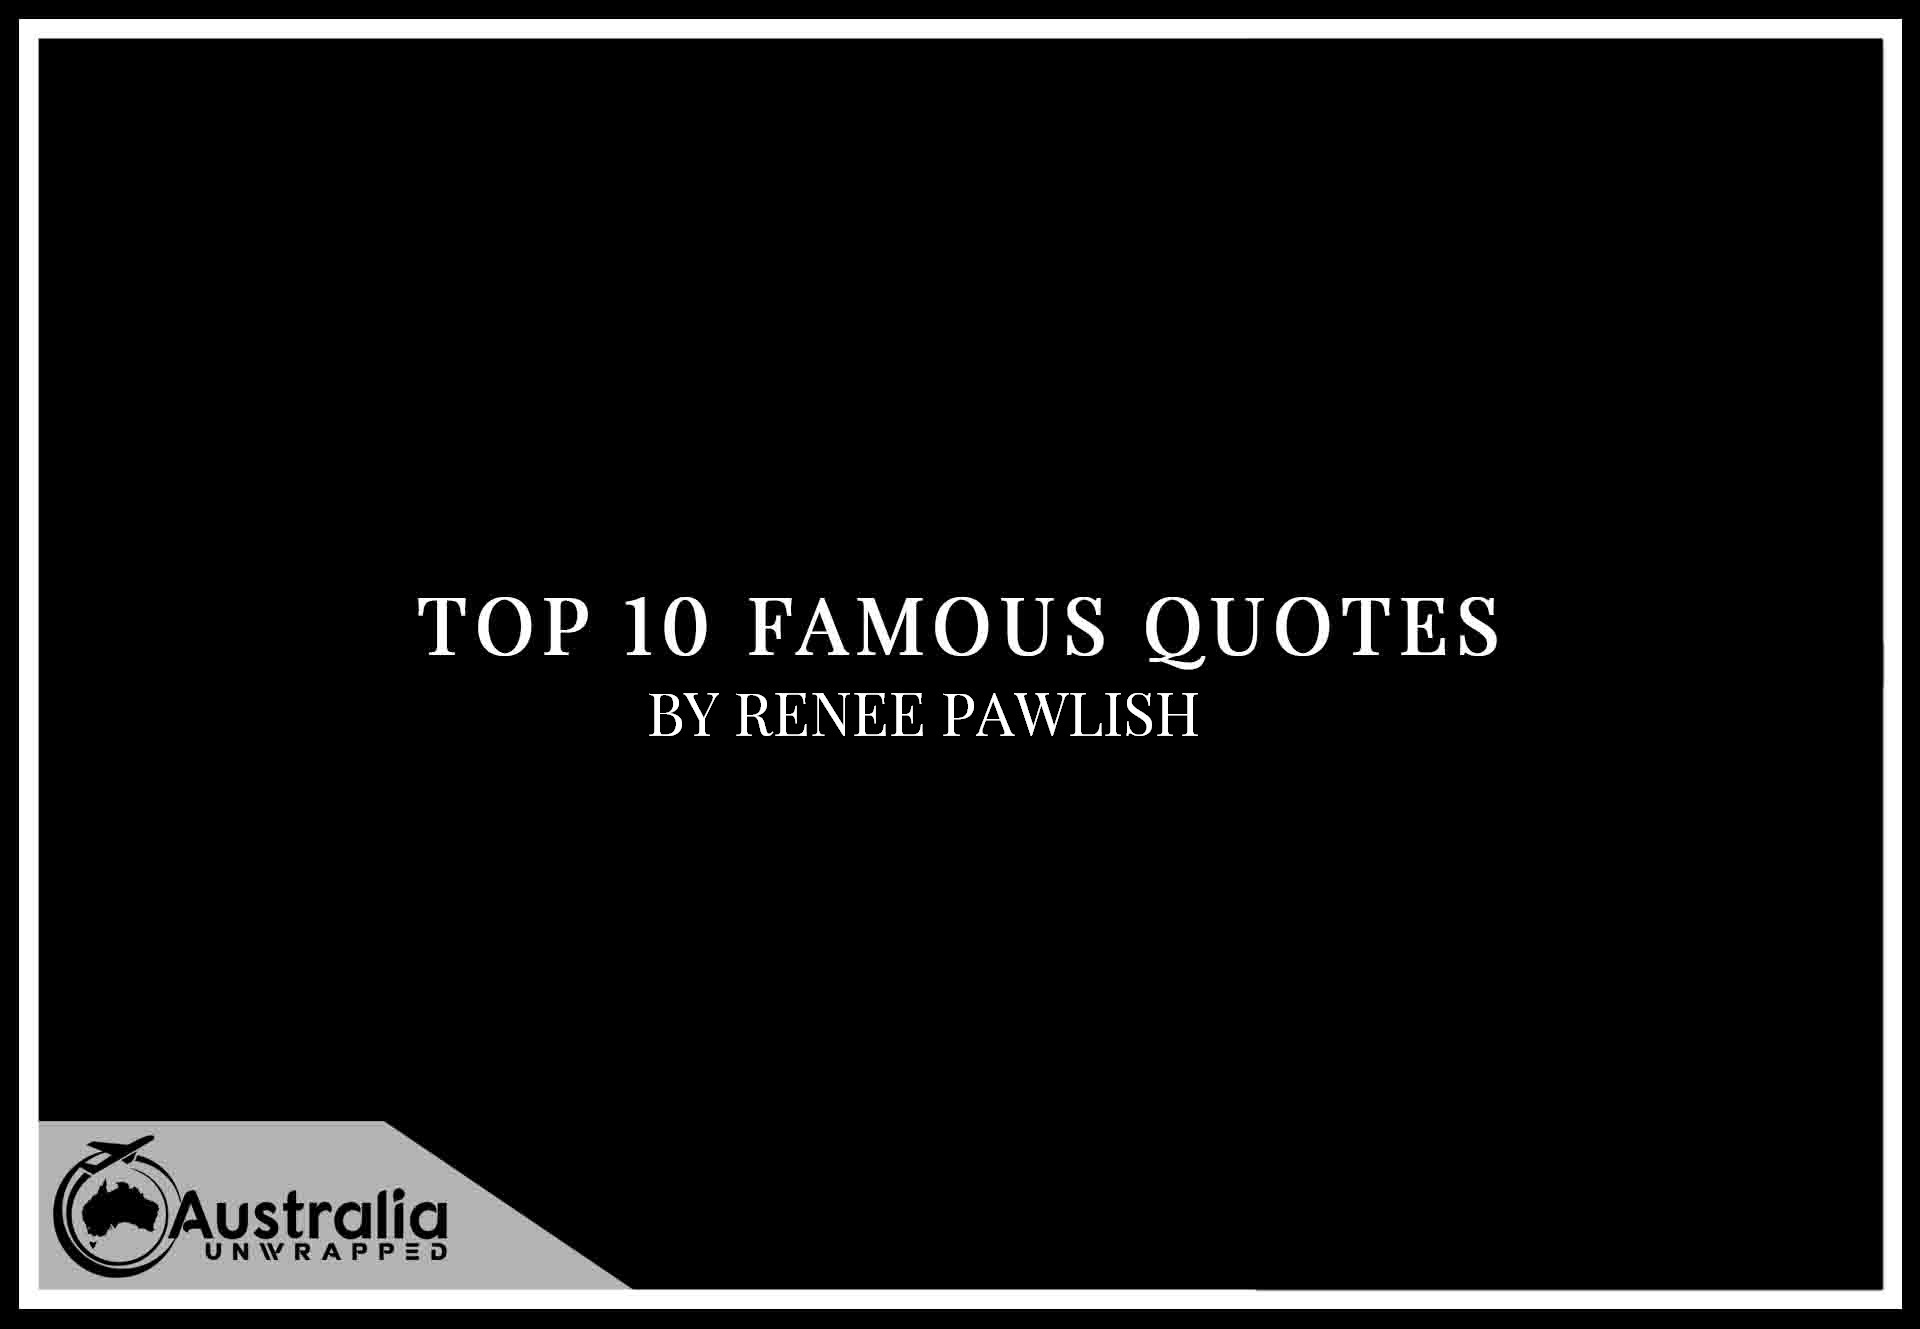 Top 10 Famous Quotes by Author Renee Pawlish